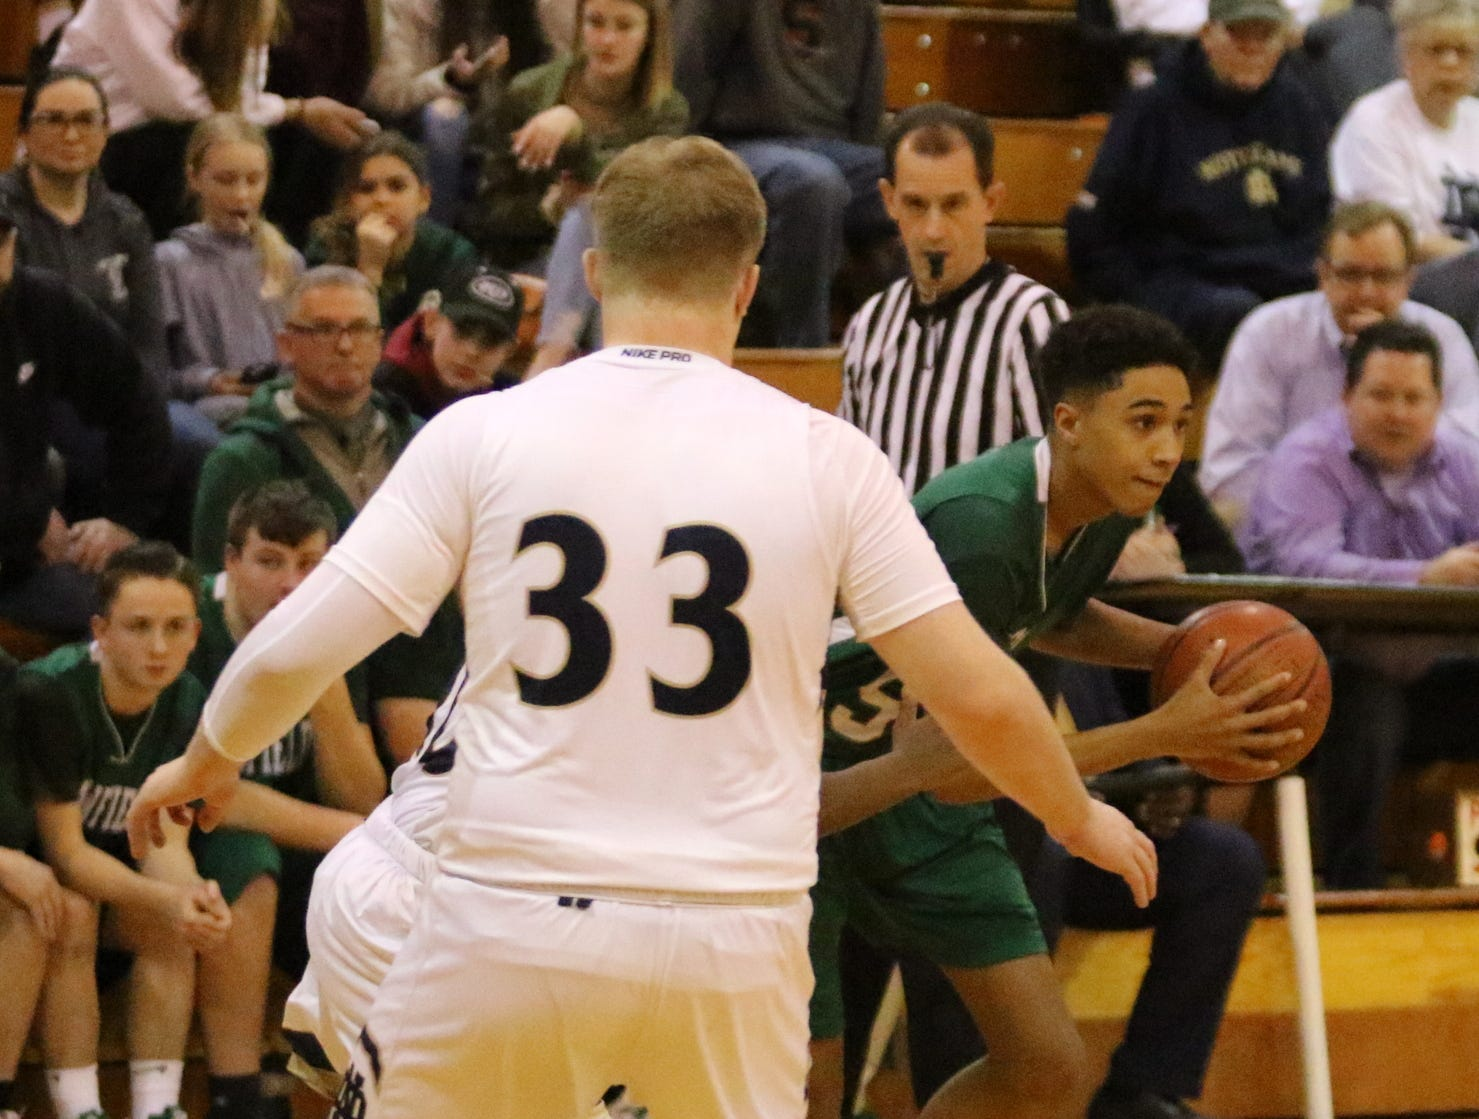 Action from Newfield at Elmira Notre Dame boys basketball Feb. 20, 2019 in Southport.